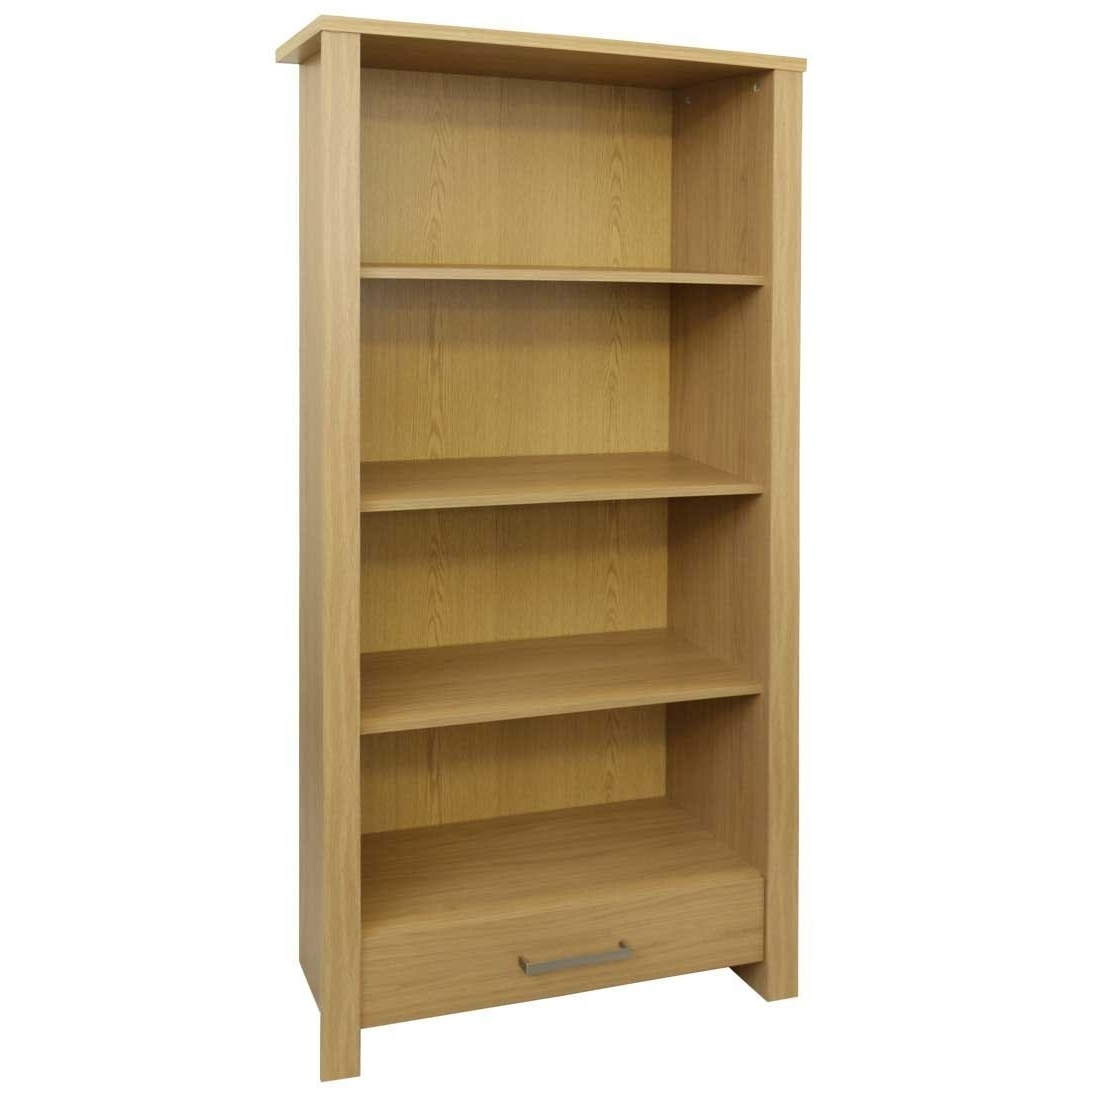 Most Recent Bookcases Flat Pack Throughout Bailey Display Cabinet / Bookcase With Drawer – Oak Wood Effect (View 11 of 15)